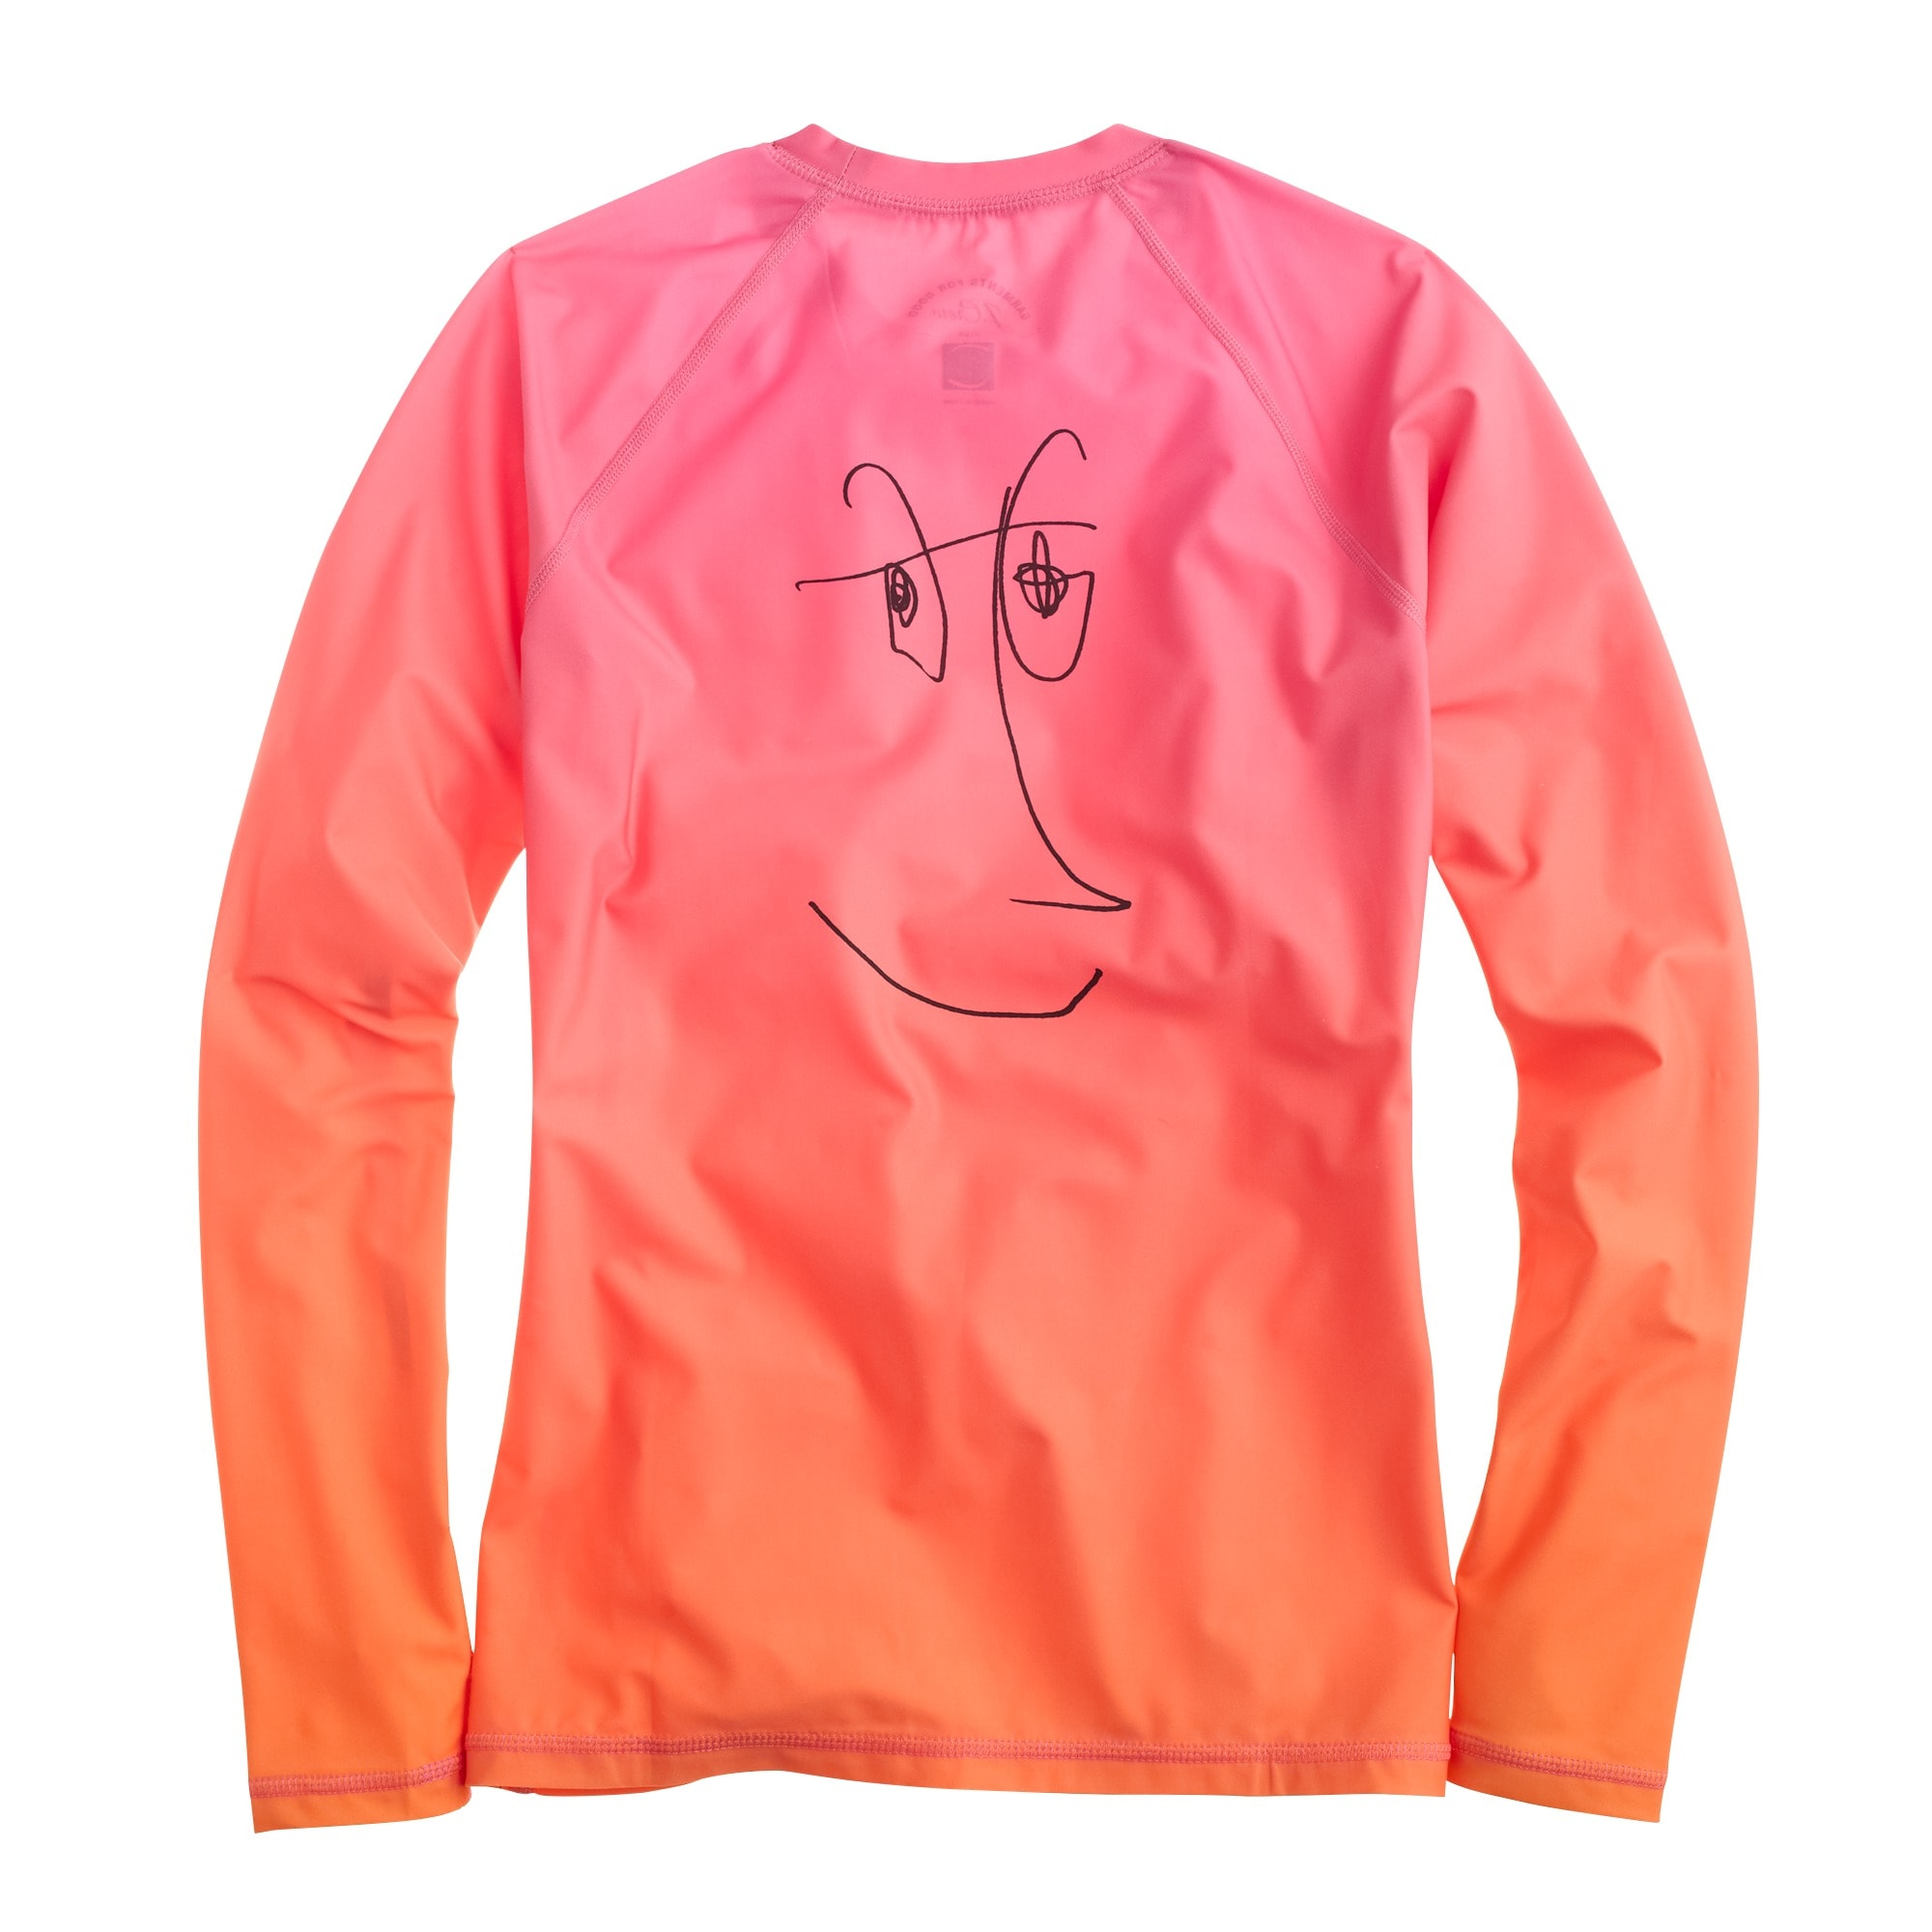 Rob Pruitt™ for J.Crew rash guard in pink orange multi